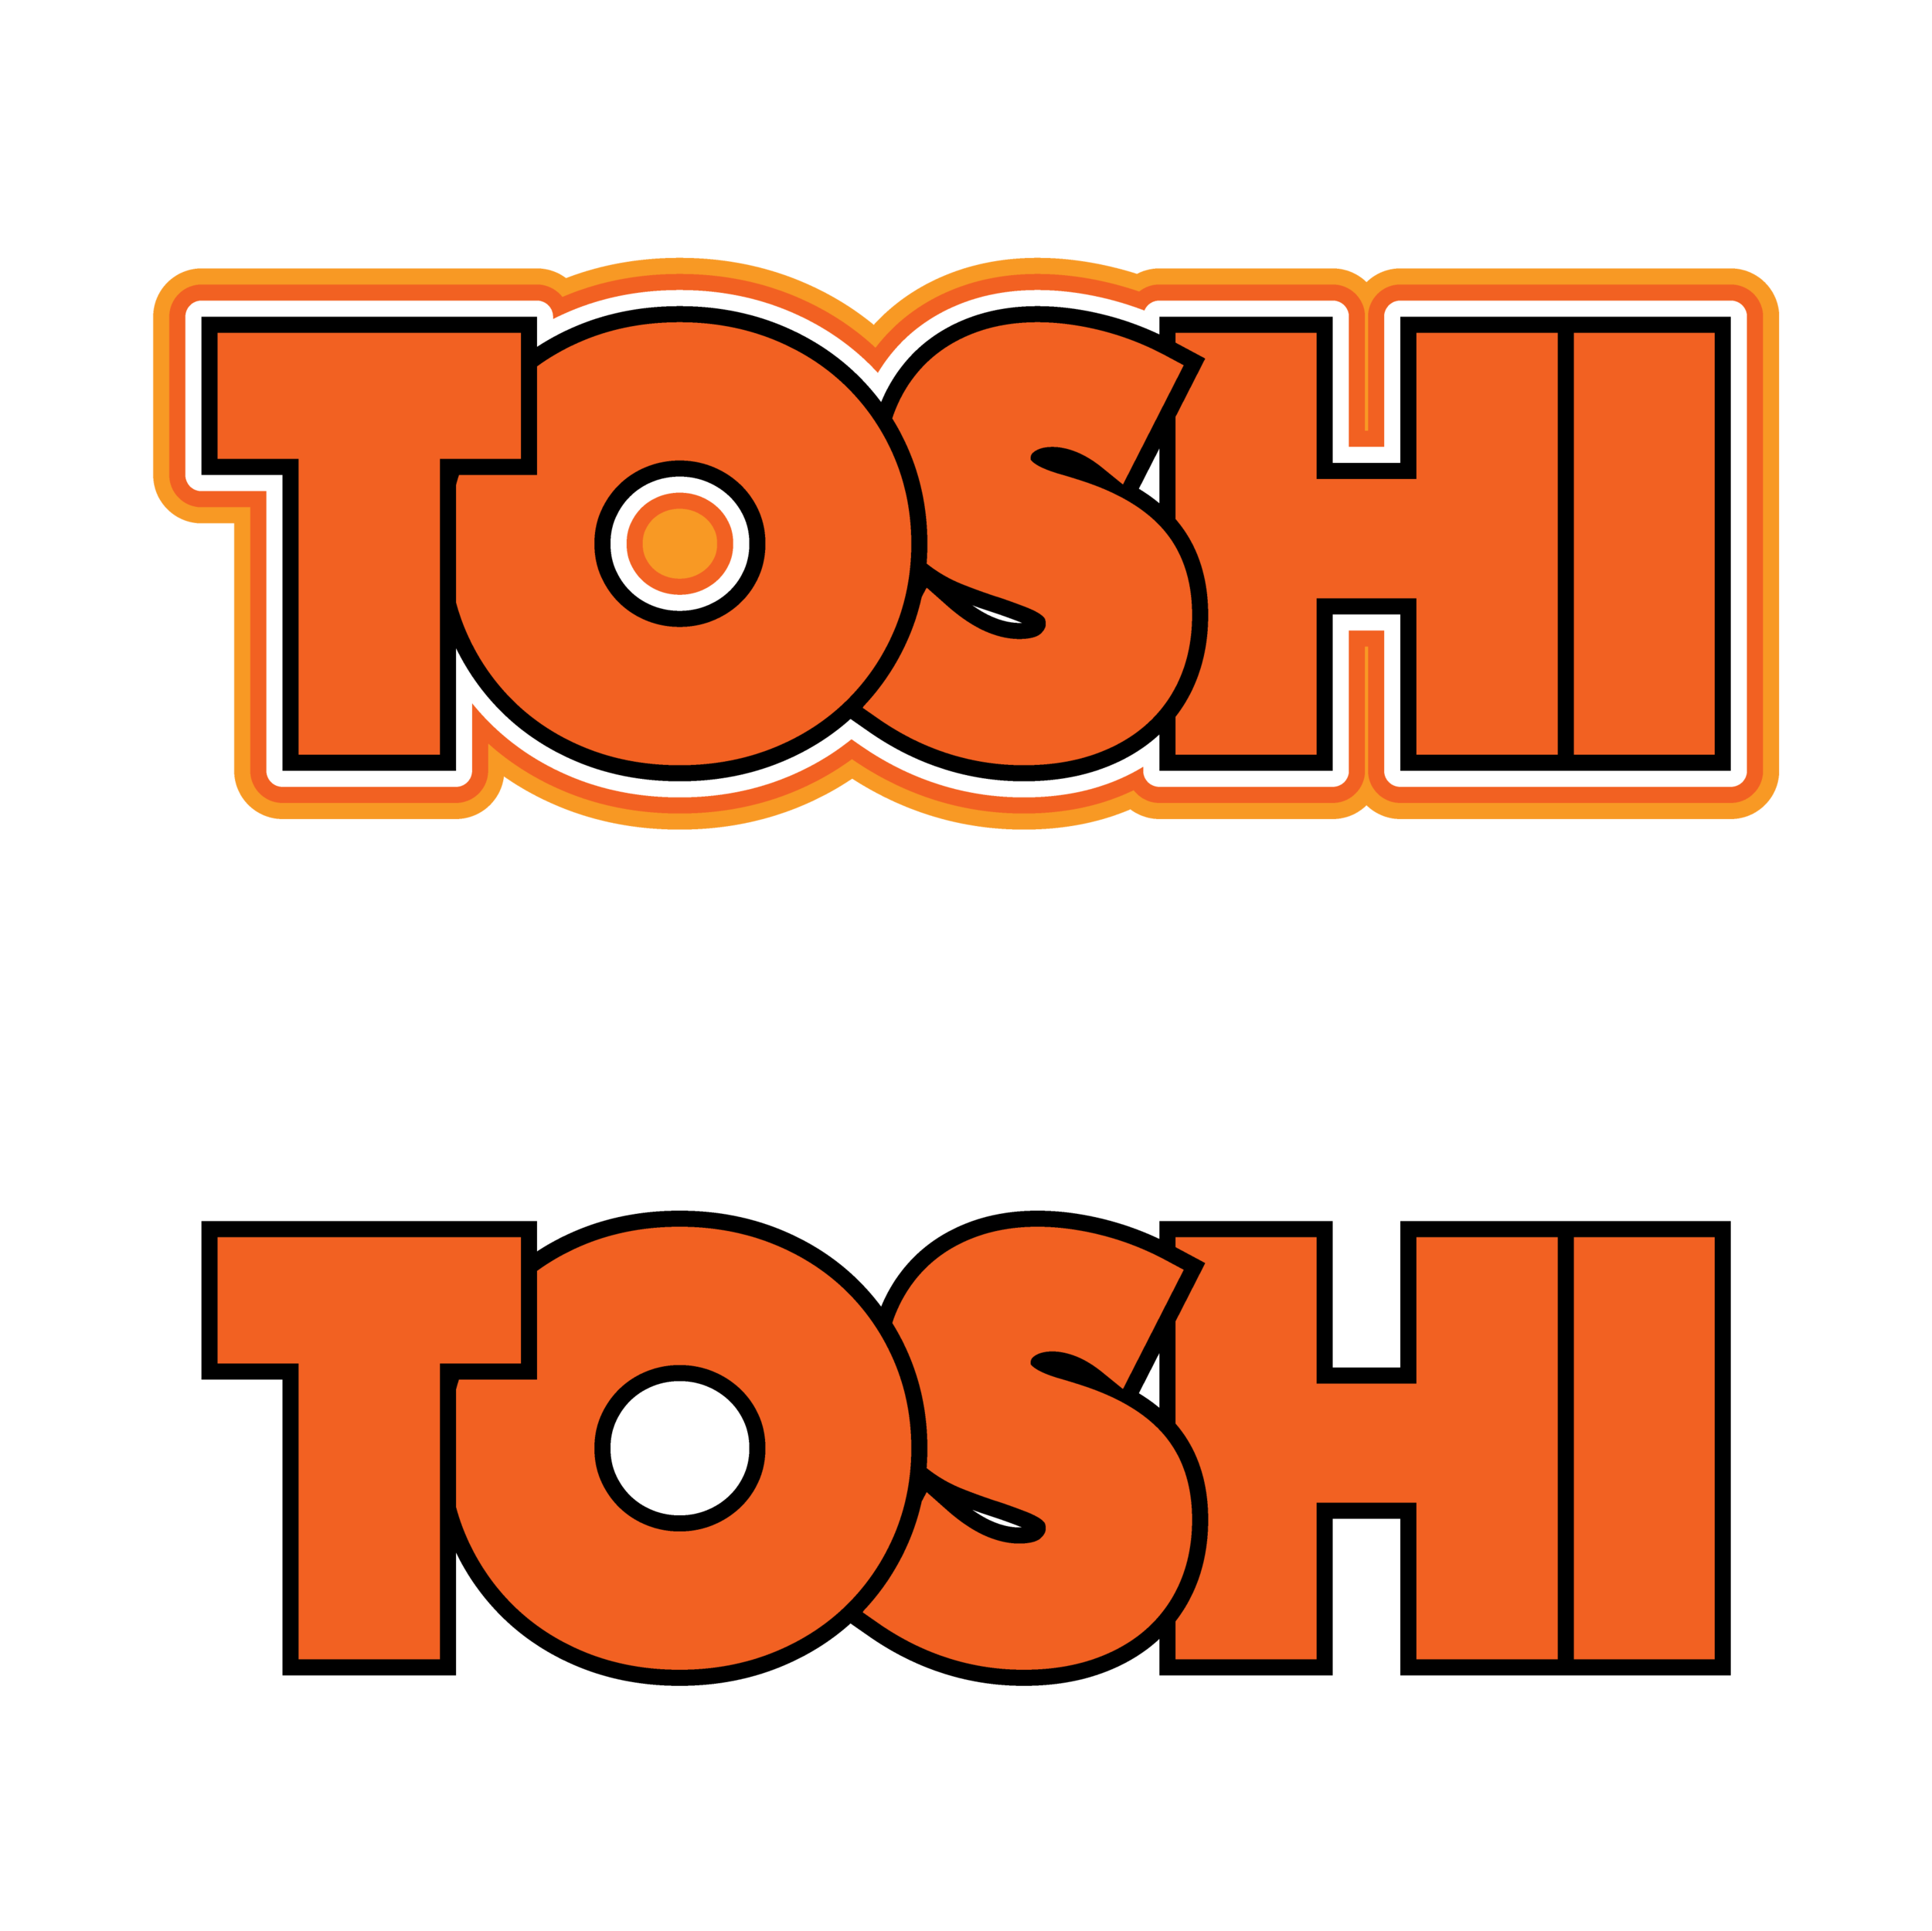 orozcodesign-ODS-Fuji-Toshi-Apparel-Final_Toshi Type Color.png